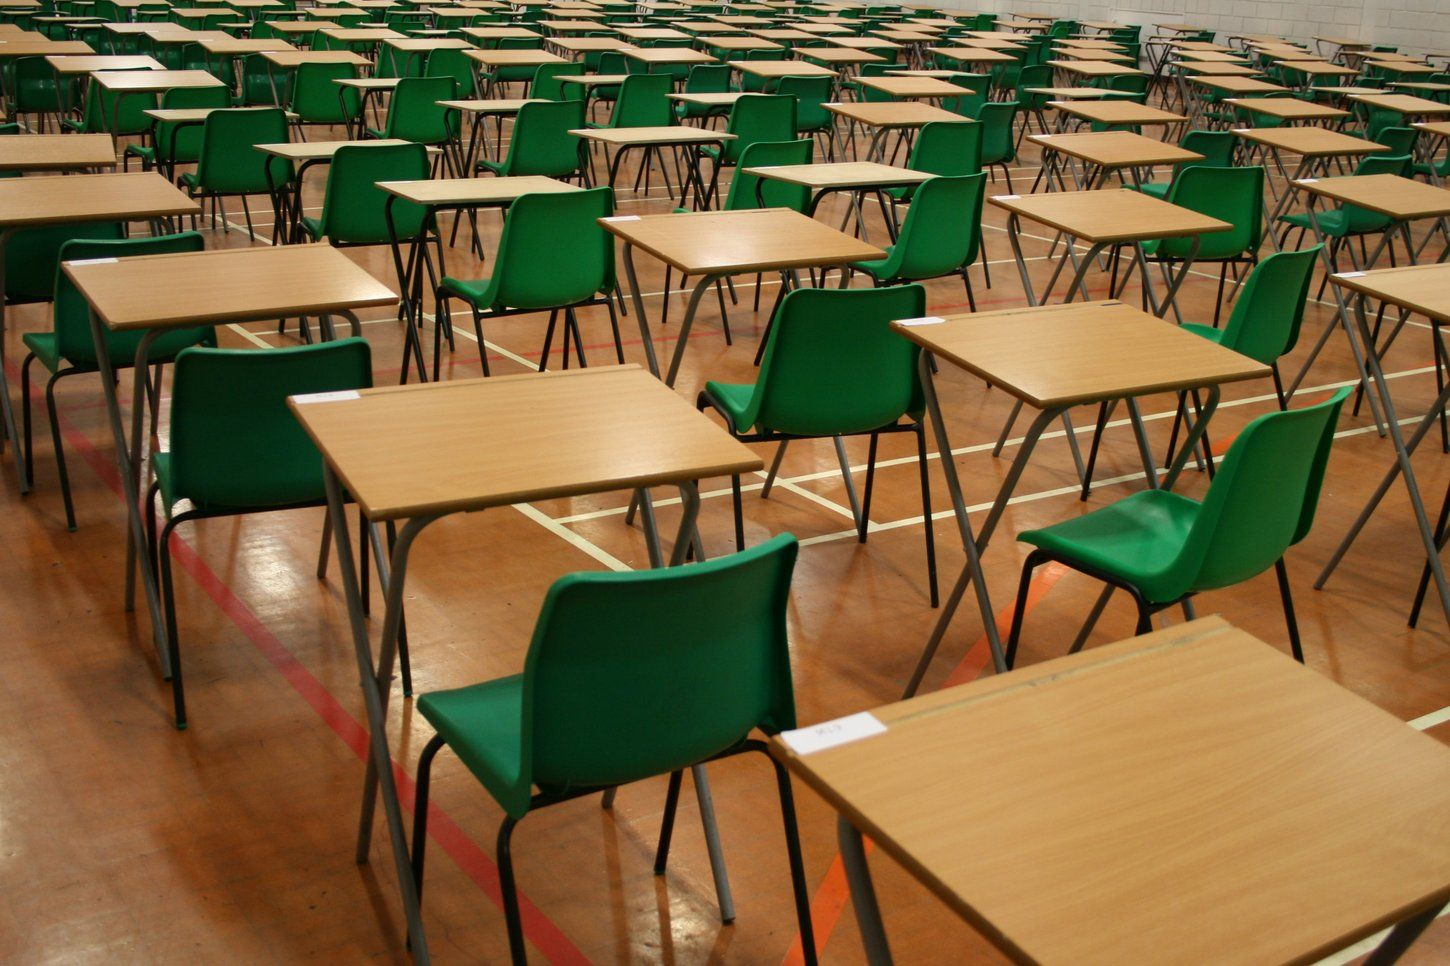 Increase in special exam consideration reflects increase in mental illness diagnoses | The Conversation, Australia